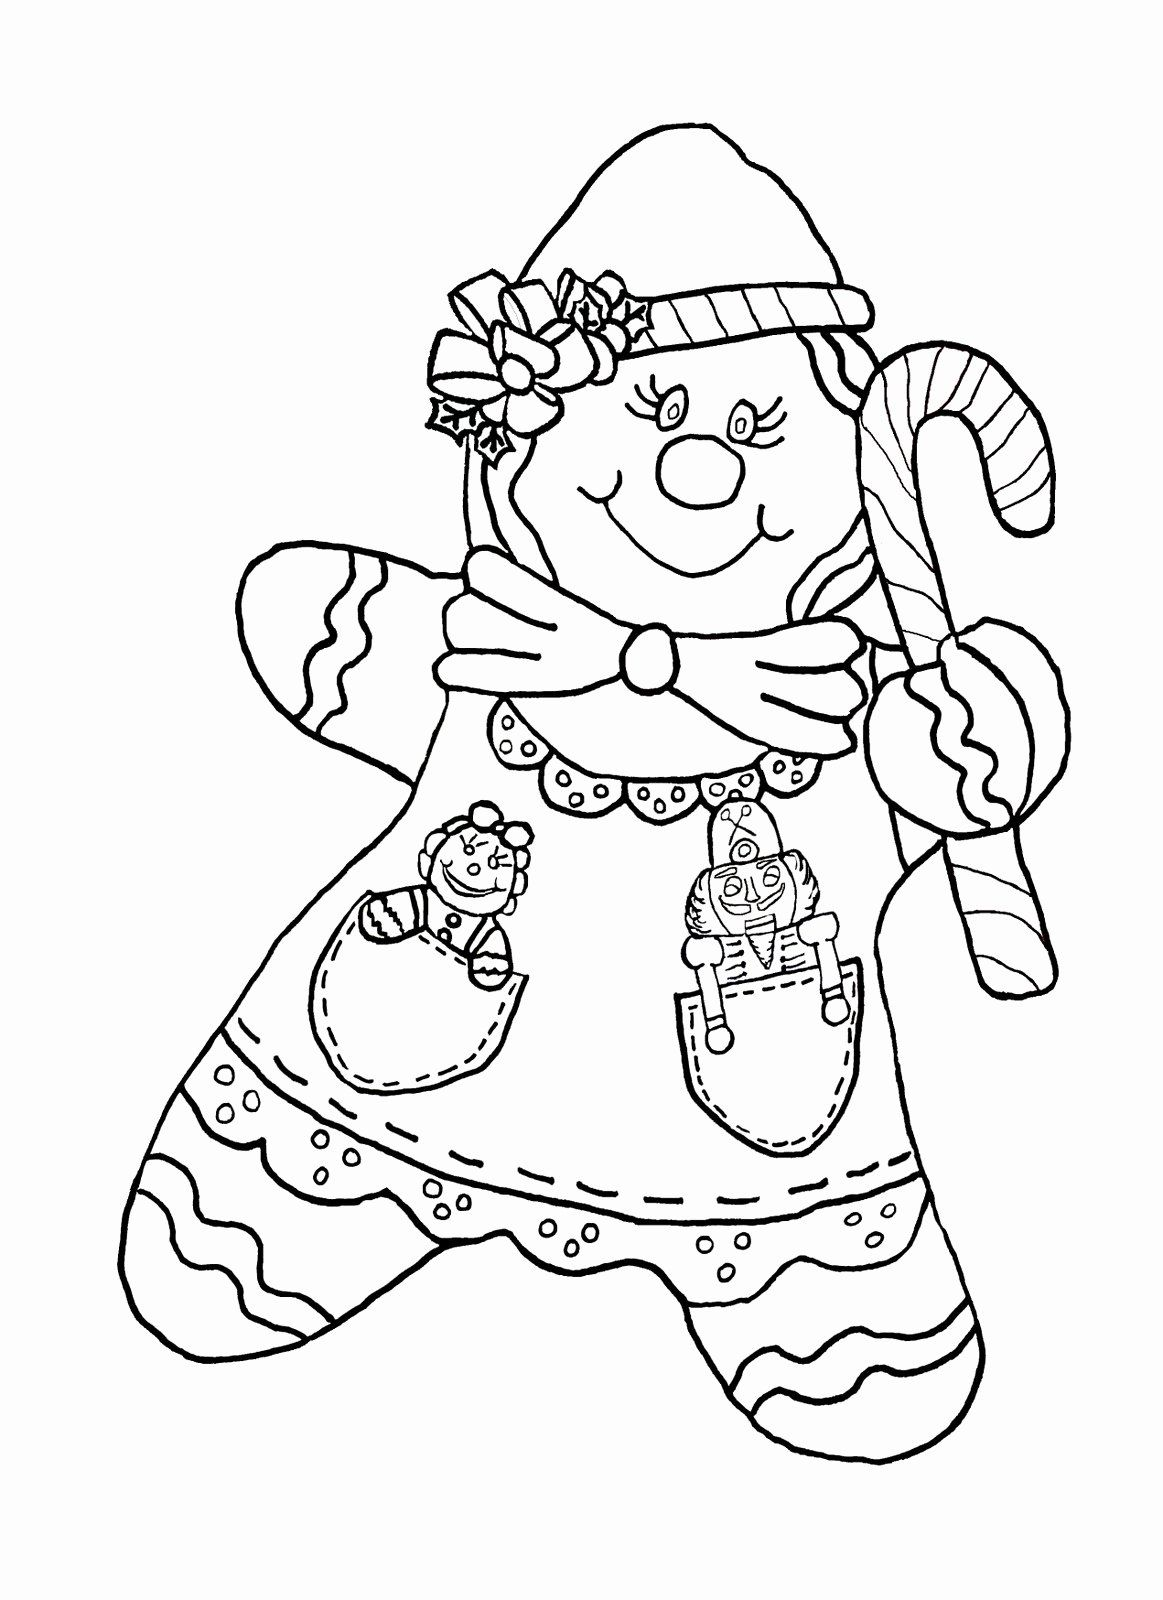 32 Gingerbread Girl Coloring Page In 2020 Coloring Pages